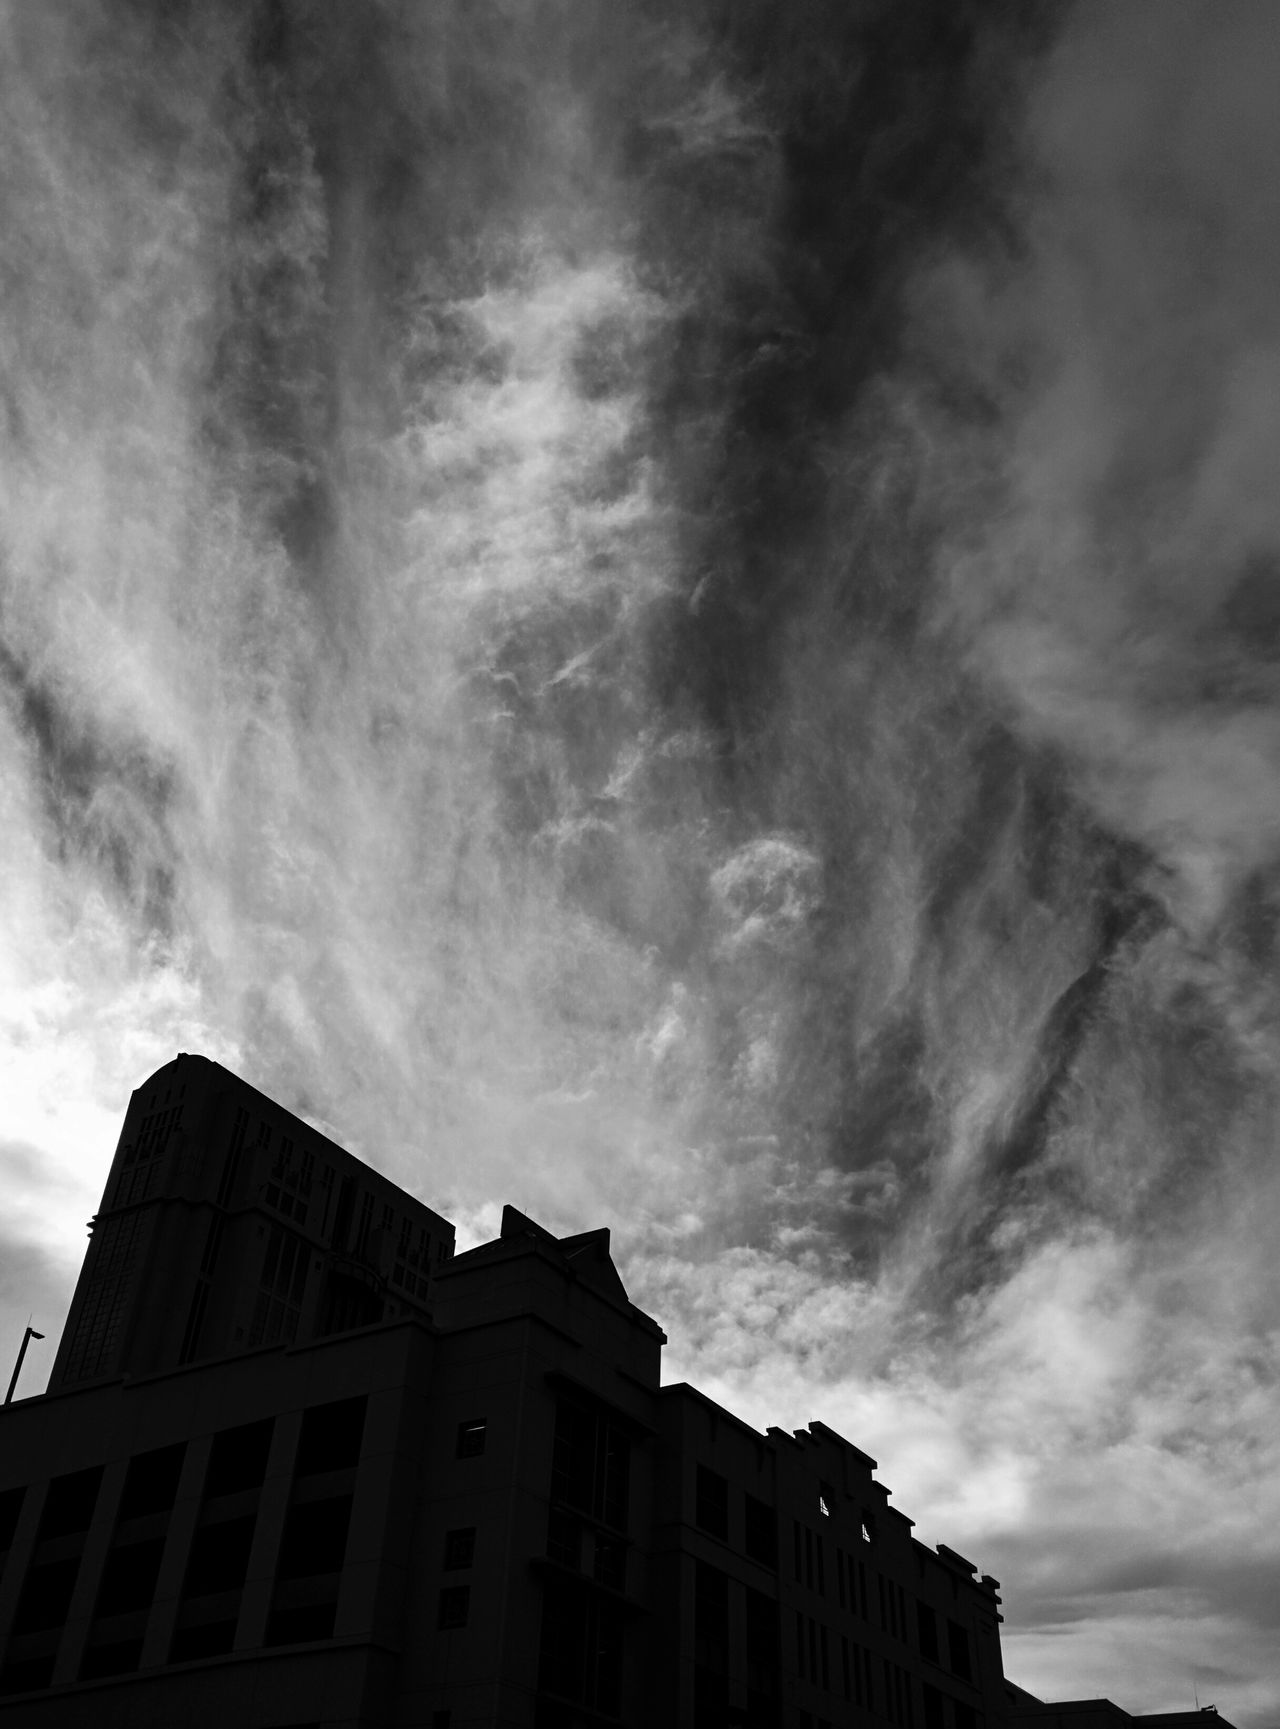 Morning Sky Downtown Architecture Cloud - Sky No People Outdoors Day Sky City Street Architecture Clouds Leonidas Tall - High Low Angle View City Life Silhouette Urban Skyline Built Structure Dark Black Background Building Exterior